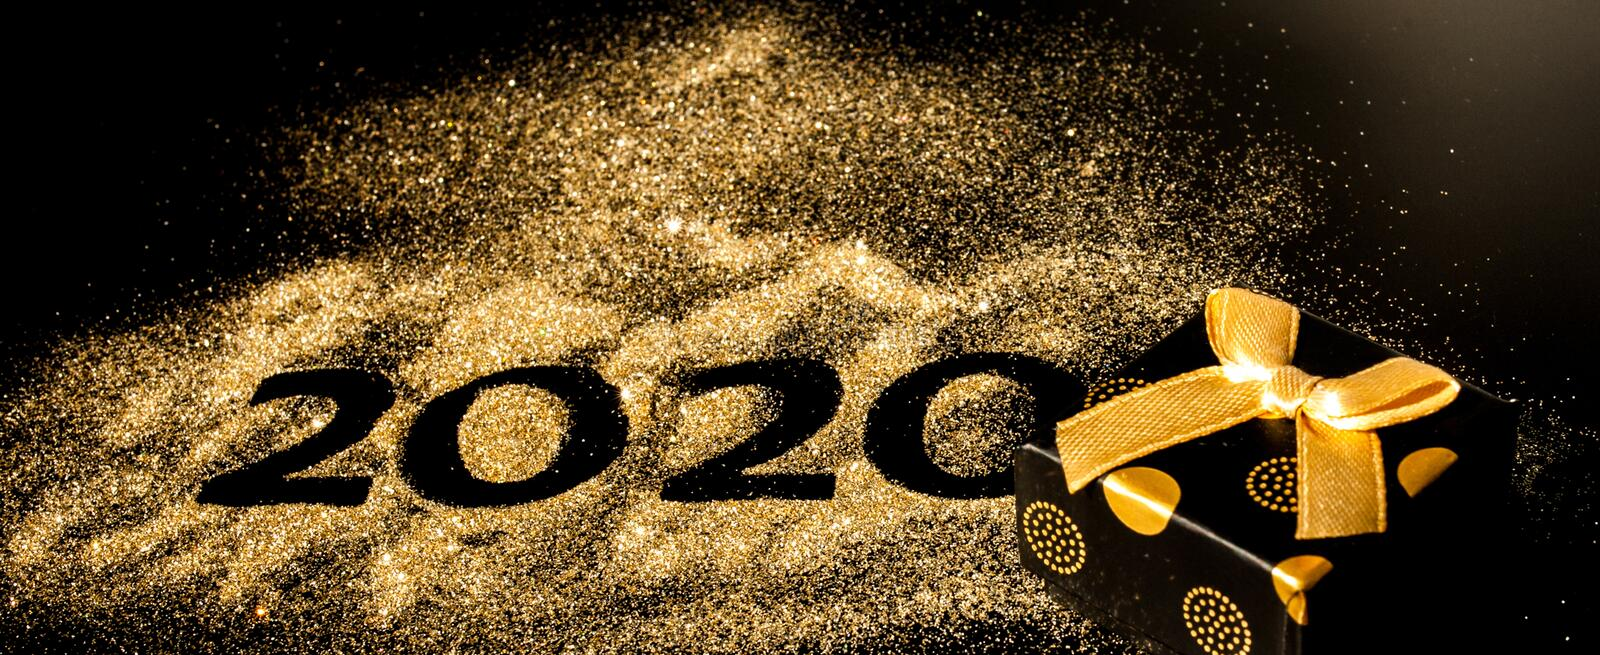 Happy New Year 2020 . Creative Collage of numbers two and zero made up the year 2020. Beautiful sparkling Golden number 2020 and. Gift on black background for stock photos